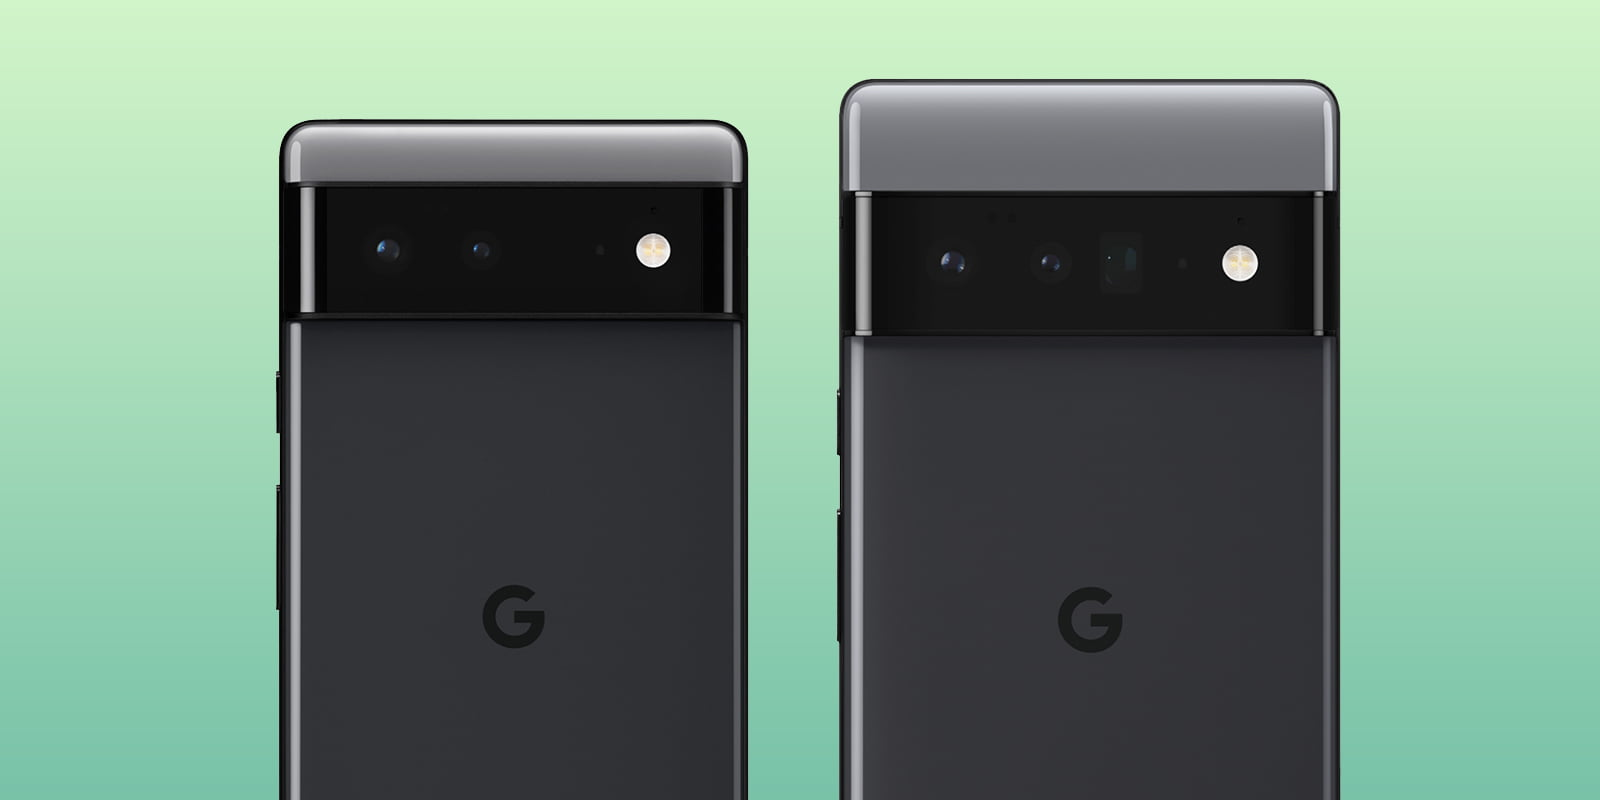 Google launches Pixel 6 and Pixel 6 Pro